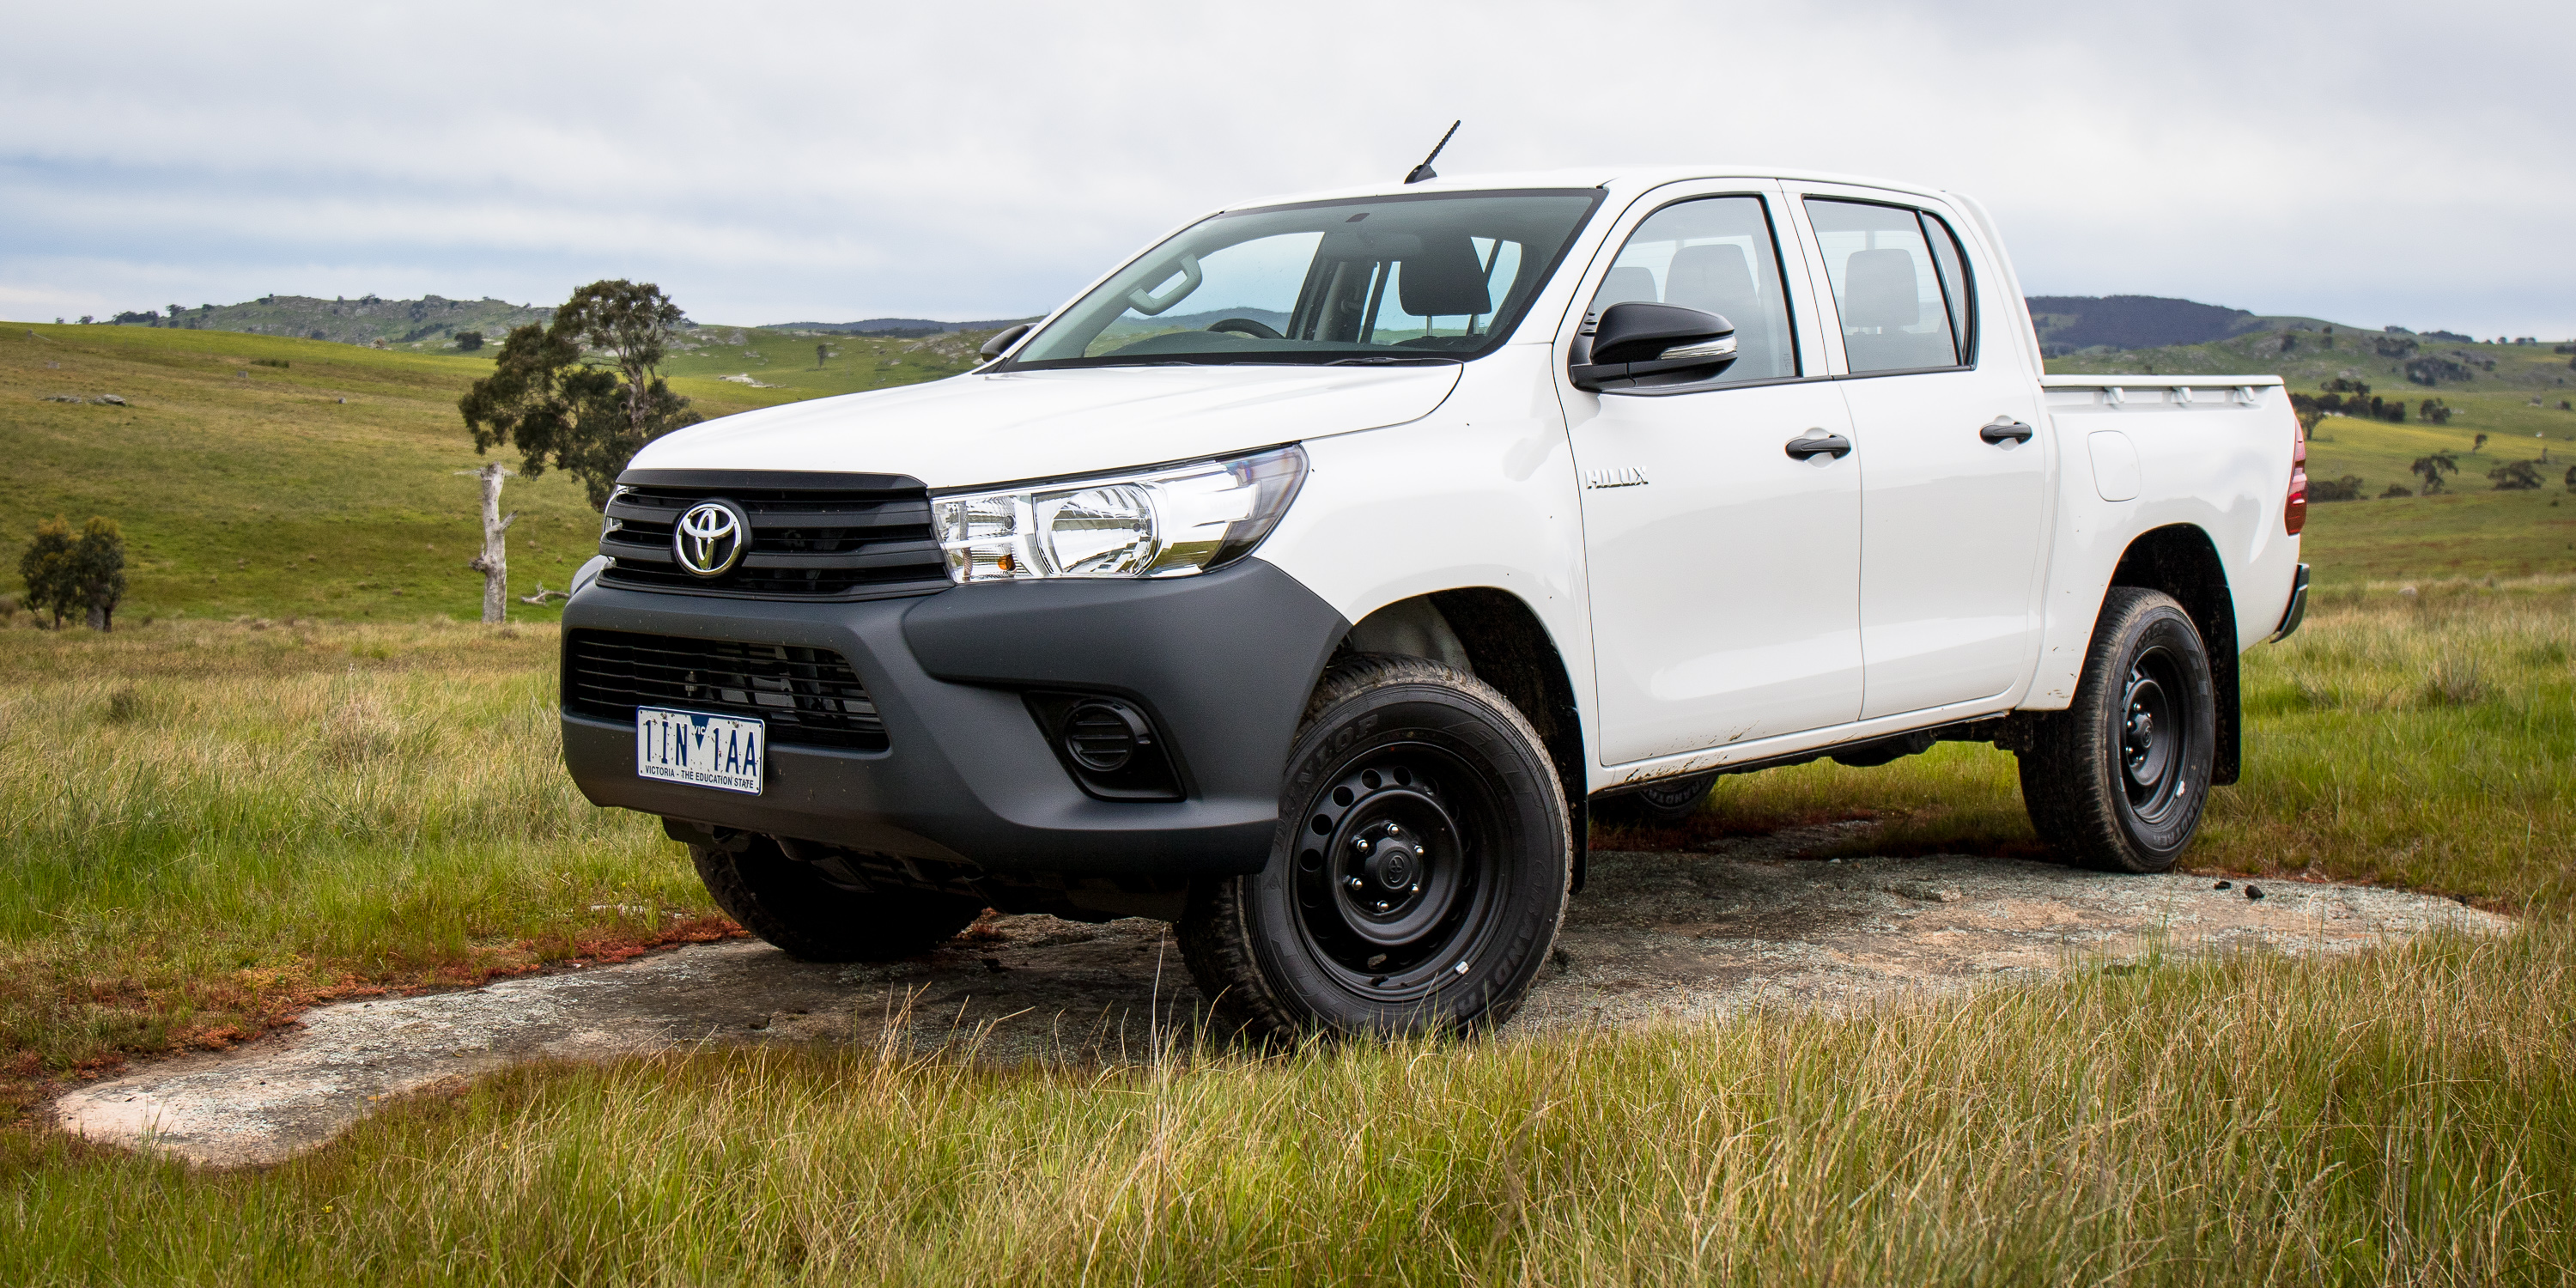 2016 toyota hilux workmate 4x4 review. Black Bedroom Furniture Sets. Home Design Ideas